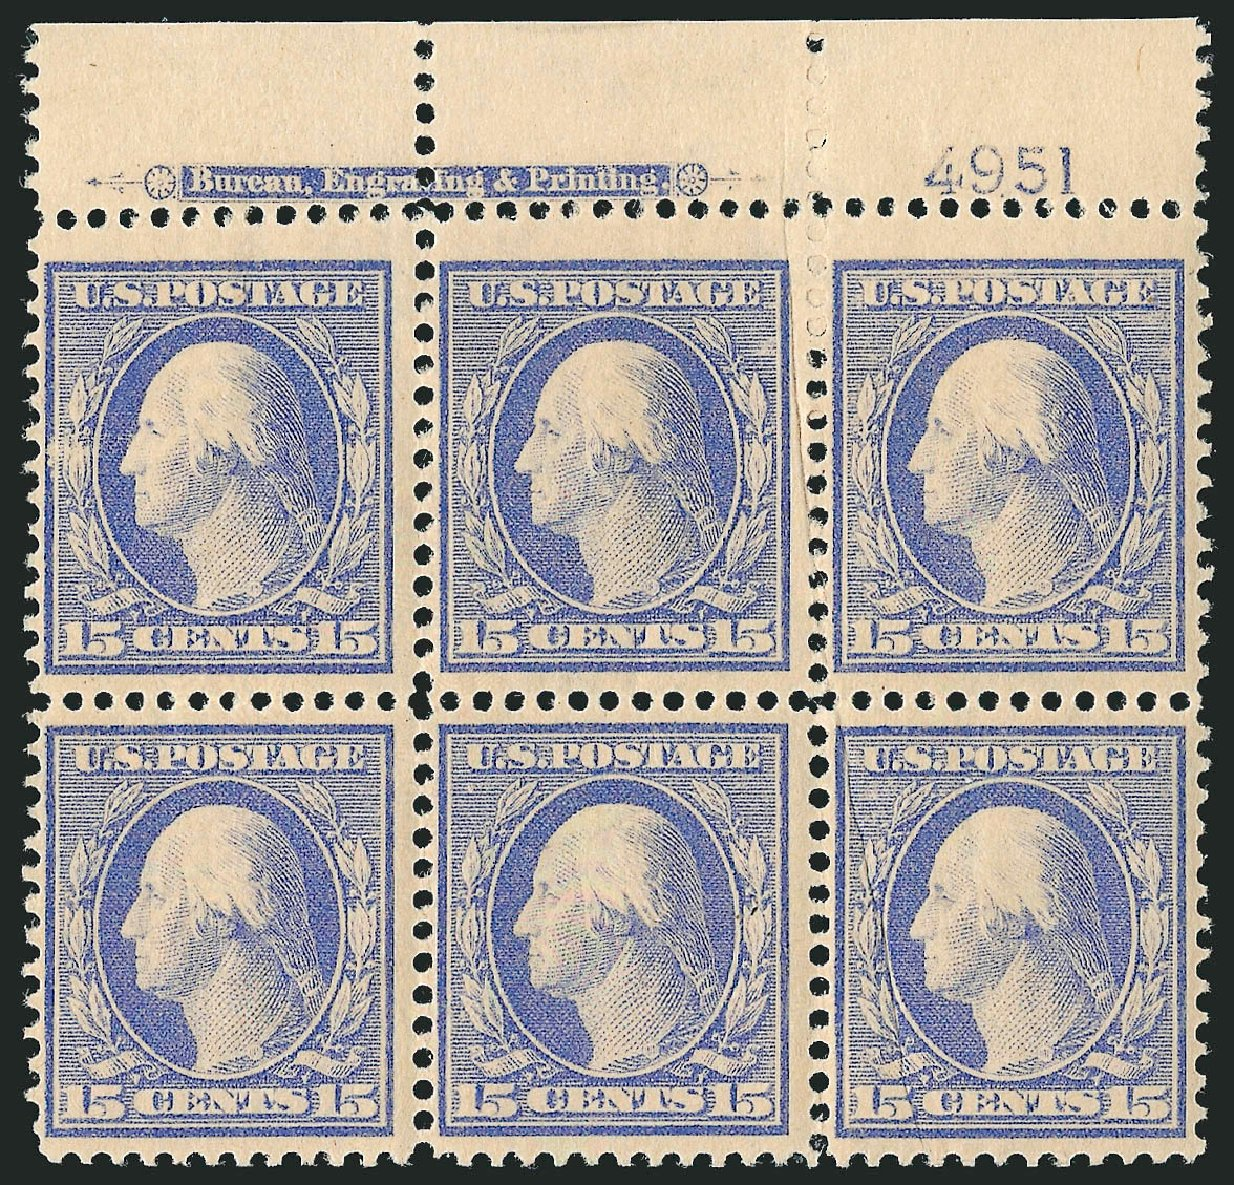 Prices of US Stamps Scott Catalogue #382 - 15c 1911 Washington Perf 12. Robert Siegel Auction Galleries, Sep 2014, Sale 1078, Lot 497